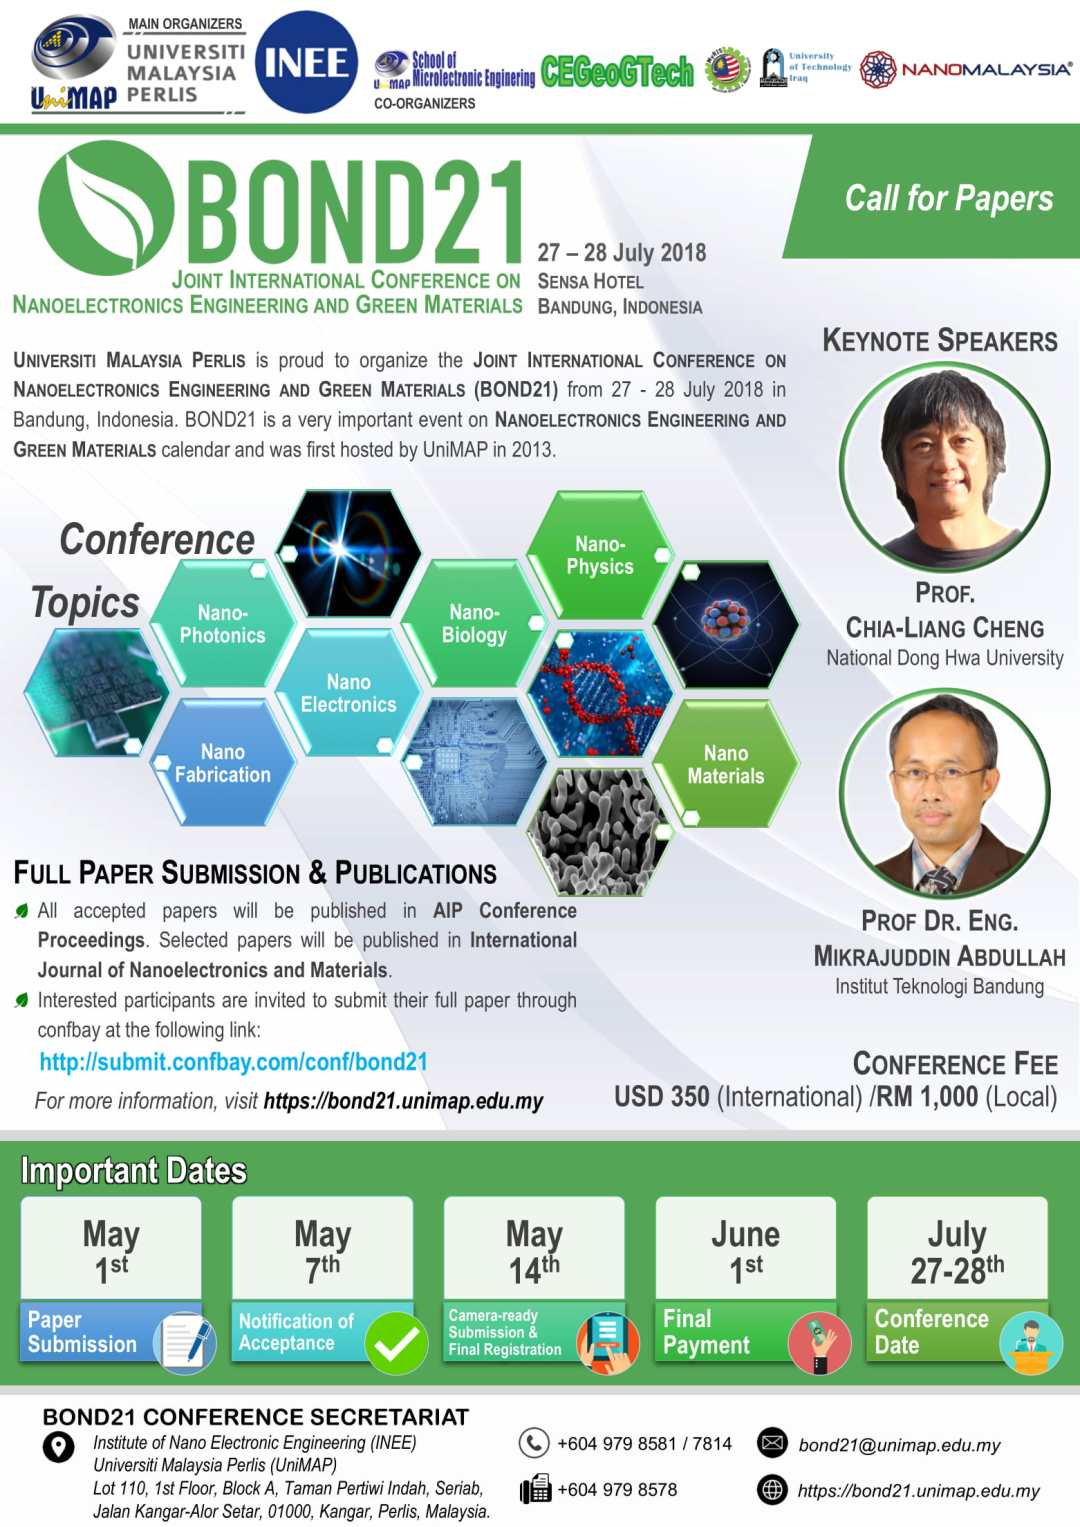 BOND21 - Joint International Conference on Nanoelectronics Engineering and Green Materials